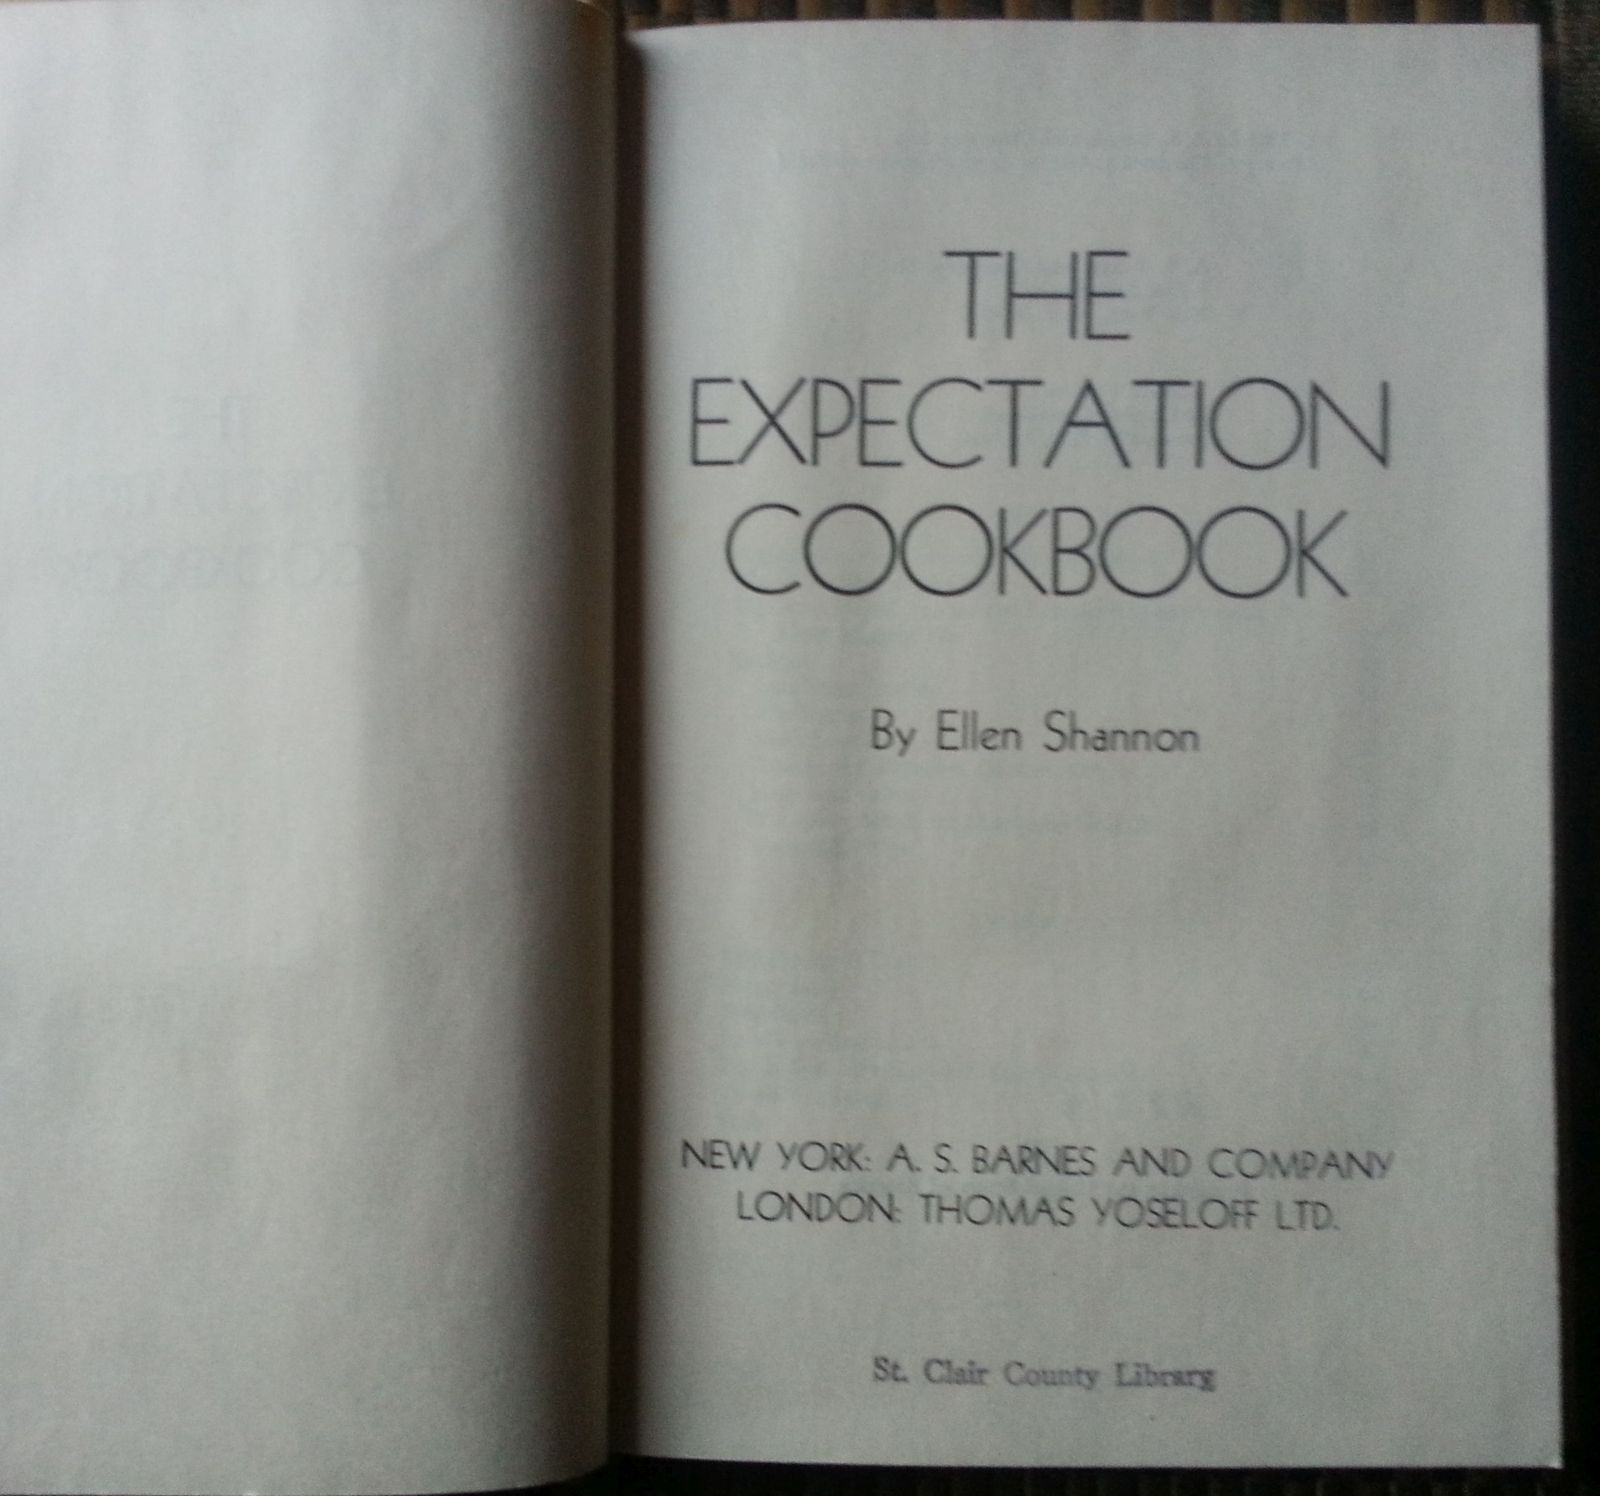 The Expectation Cookbook by Ellen Shannon 1965 HBDJ